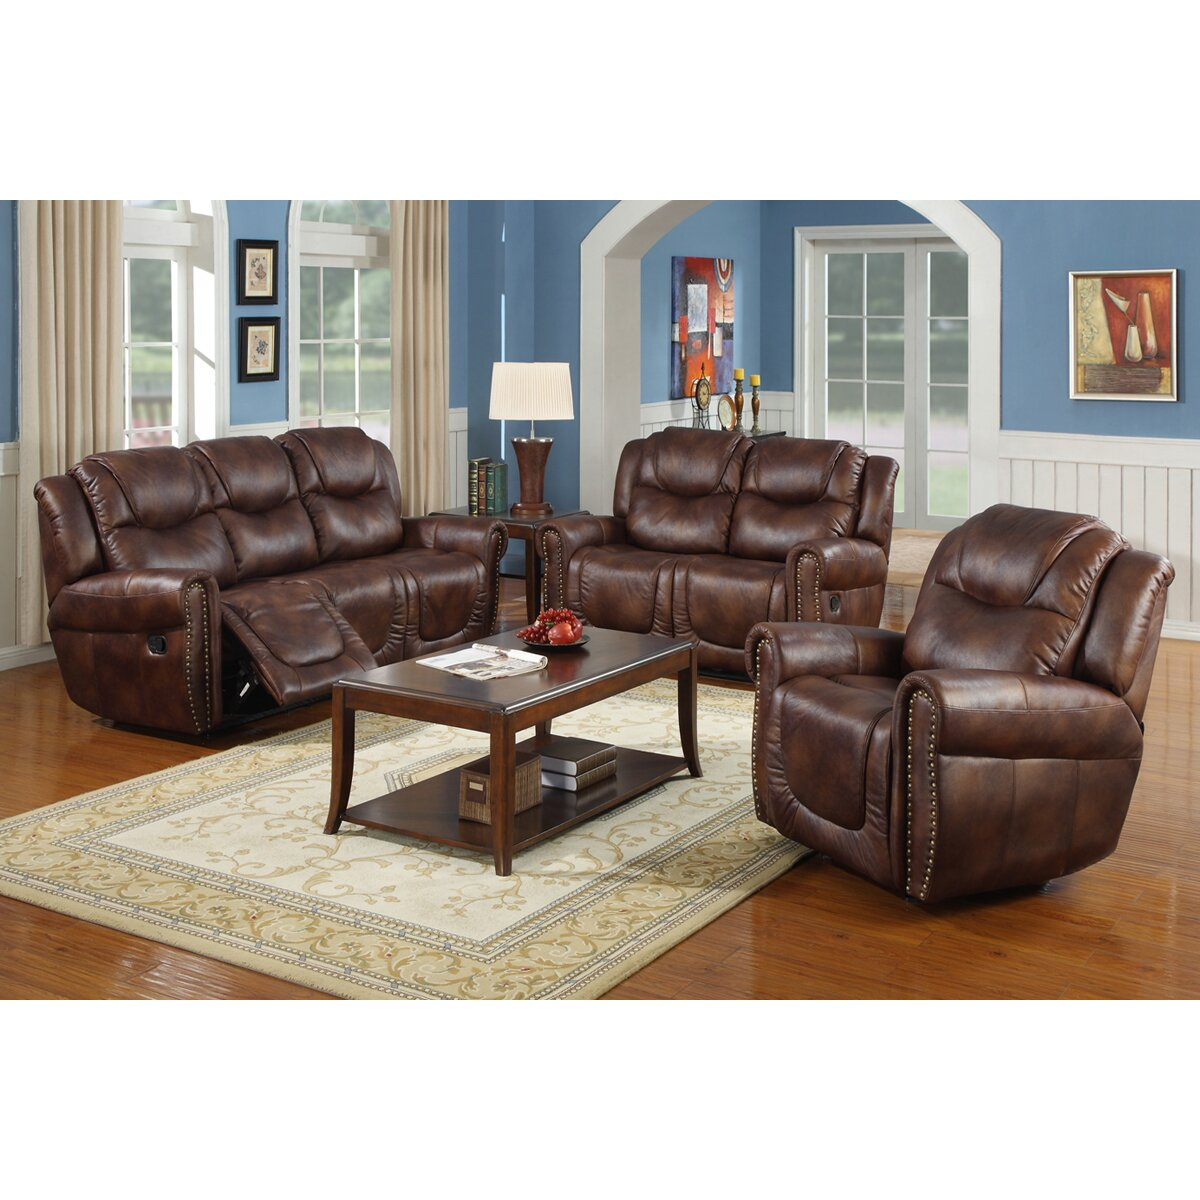 Toledo 3 piece bonded leather reclining living room sofa for 3 piece living room furniture